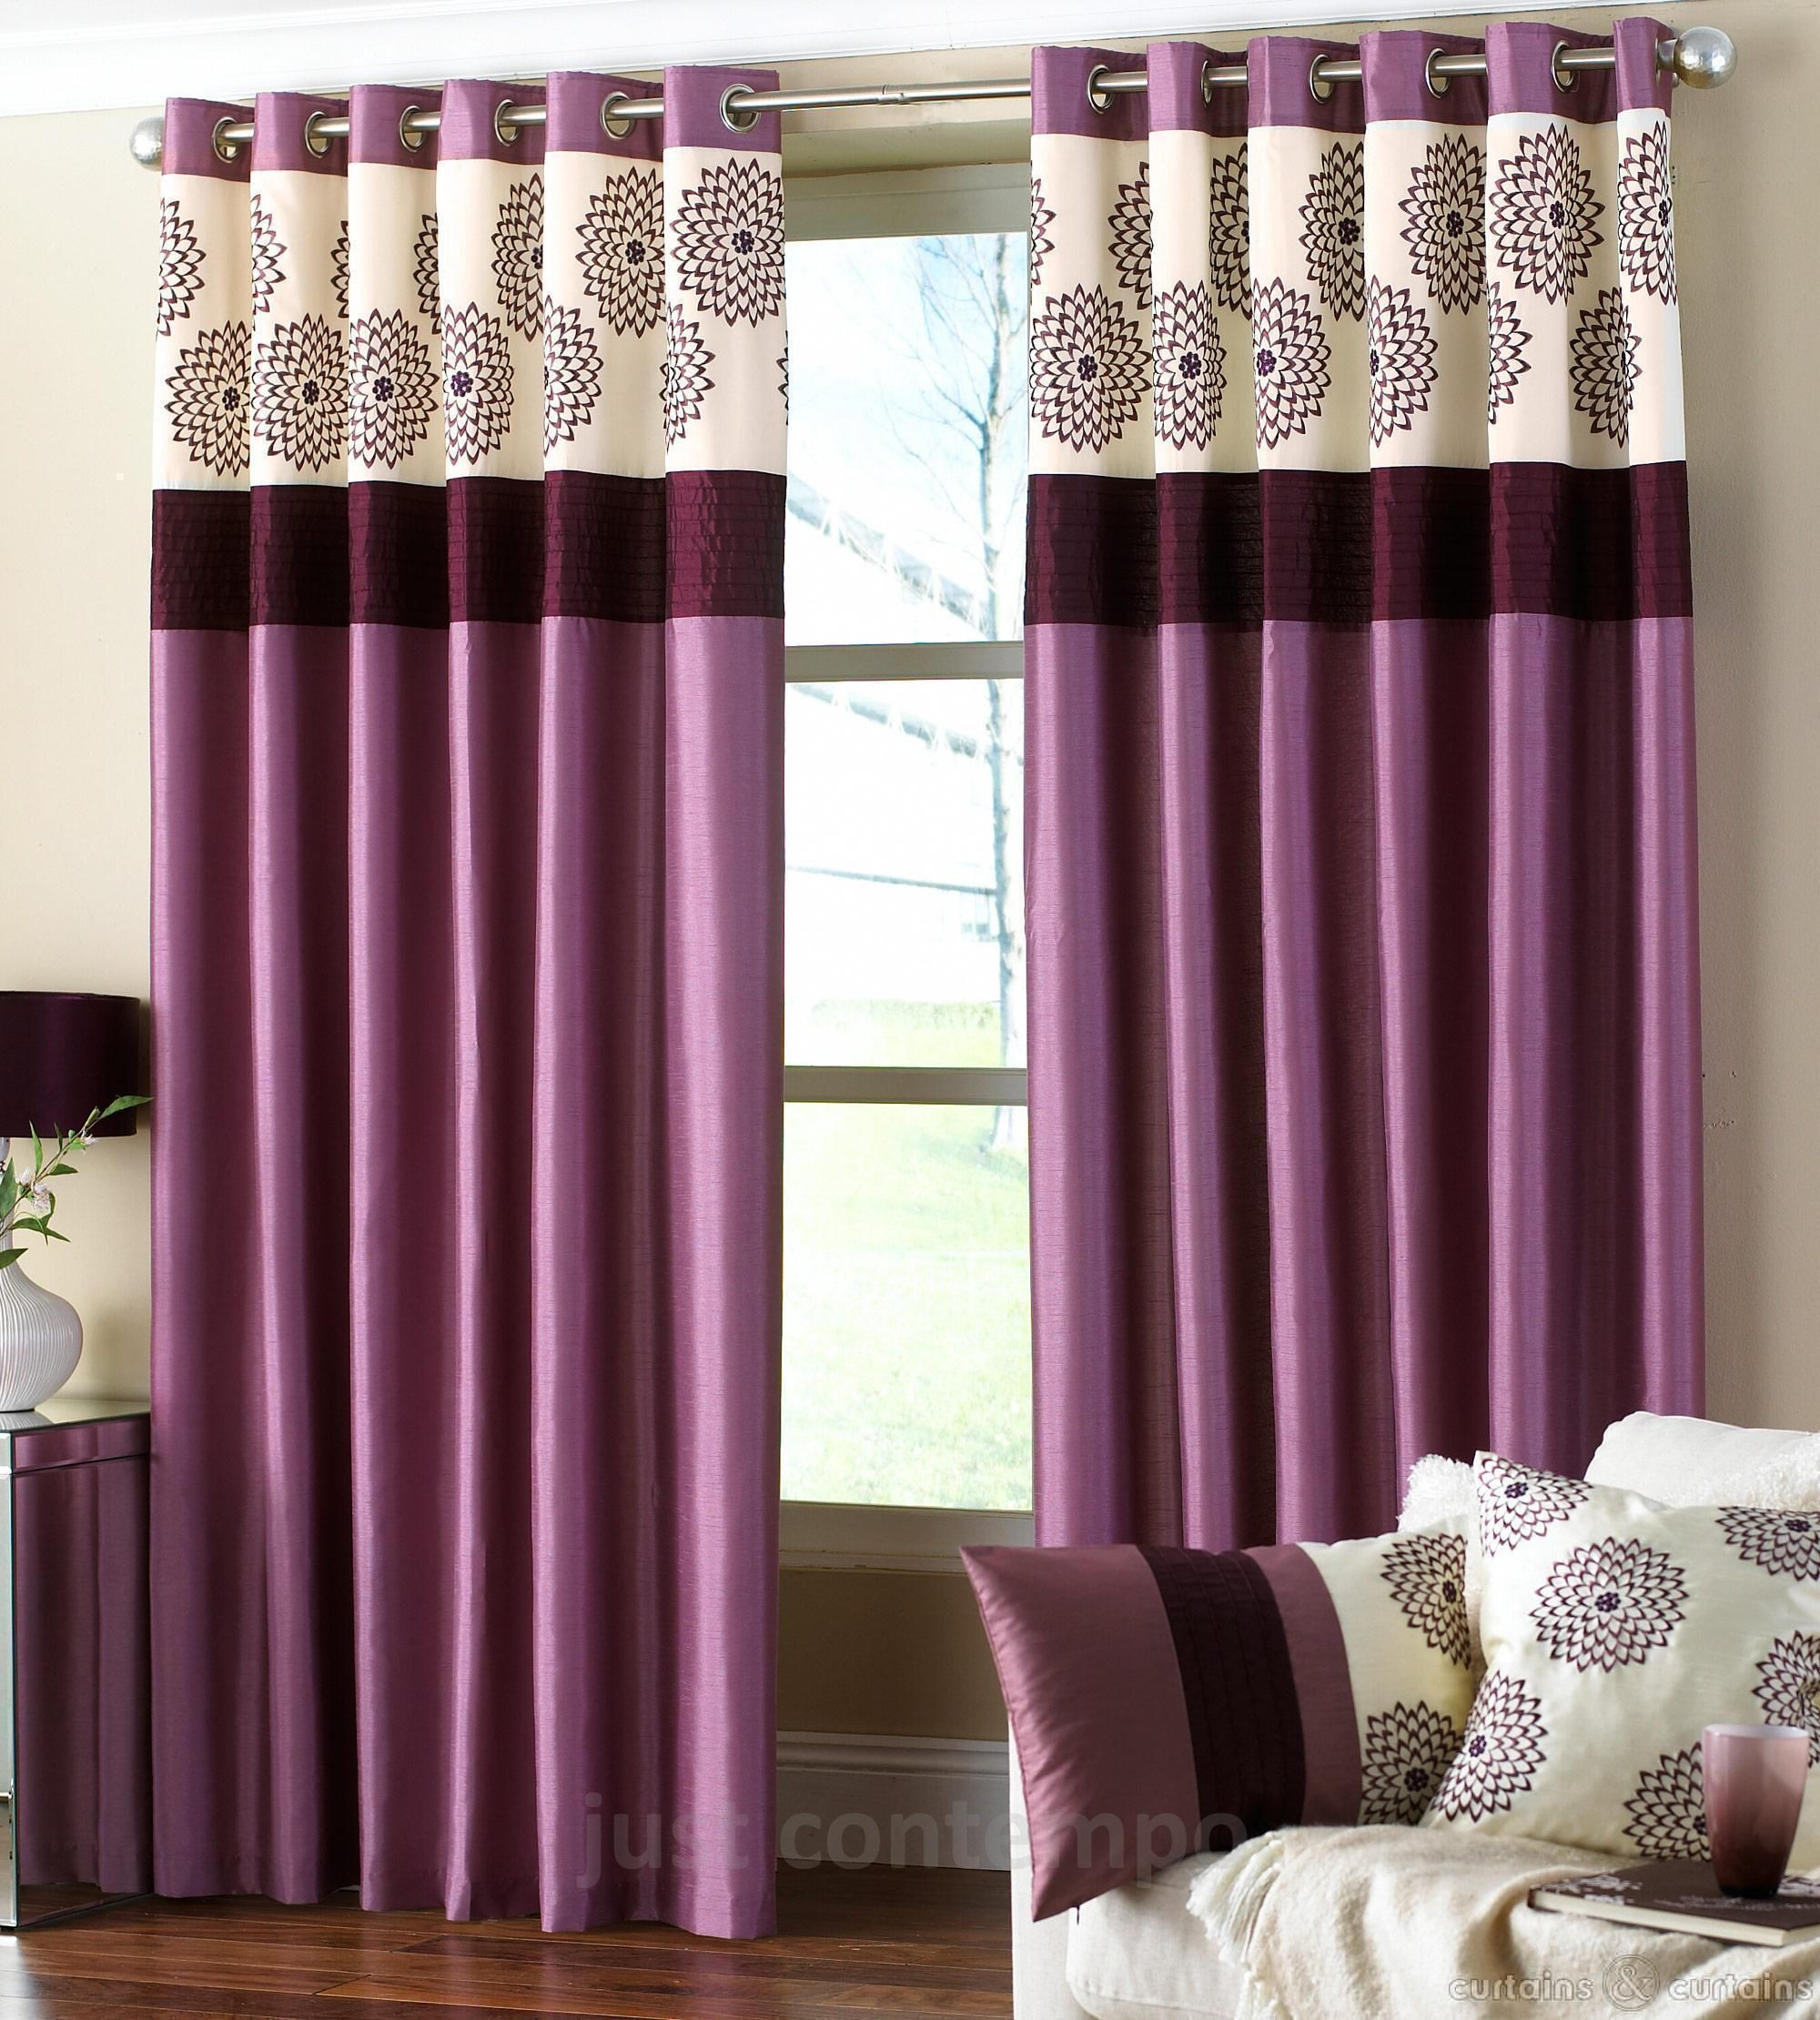 The Right Guide To Maintain Your Designer Curtains Designalls In 2020 Curtain Designs Curtains Beautiful Houses Interior